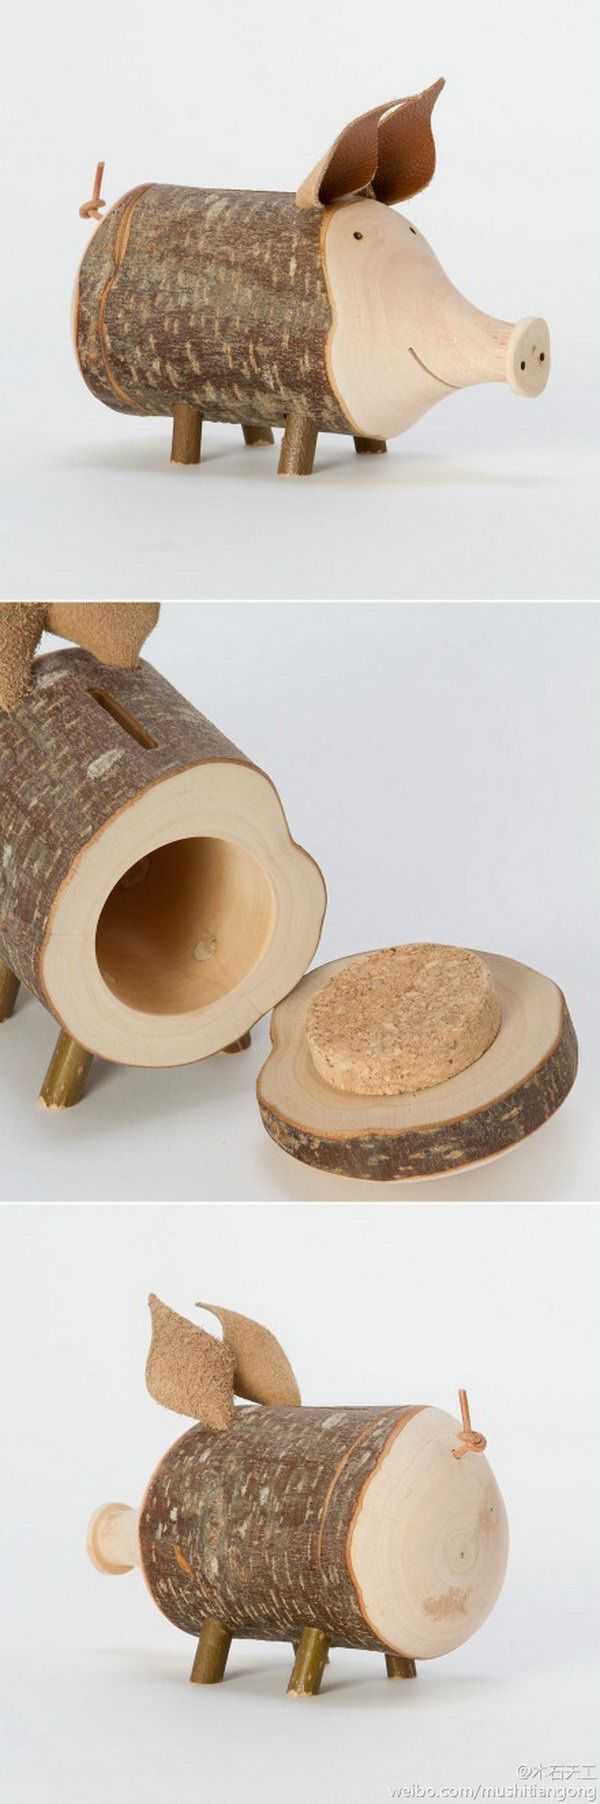 Wooden Piggy Bank, Creative Piggy Banks Make Saving Fun, http://hative.com/creative-piggy-banks-make-saving-fun/,